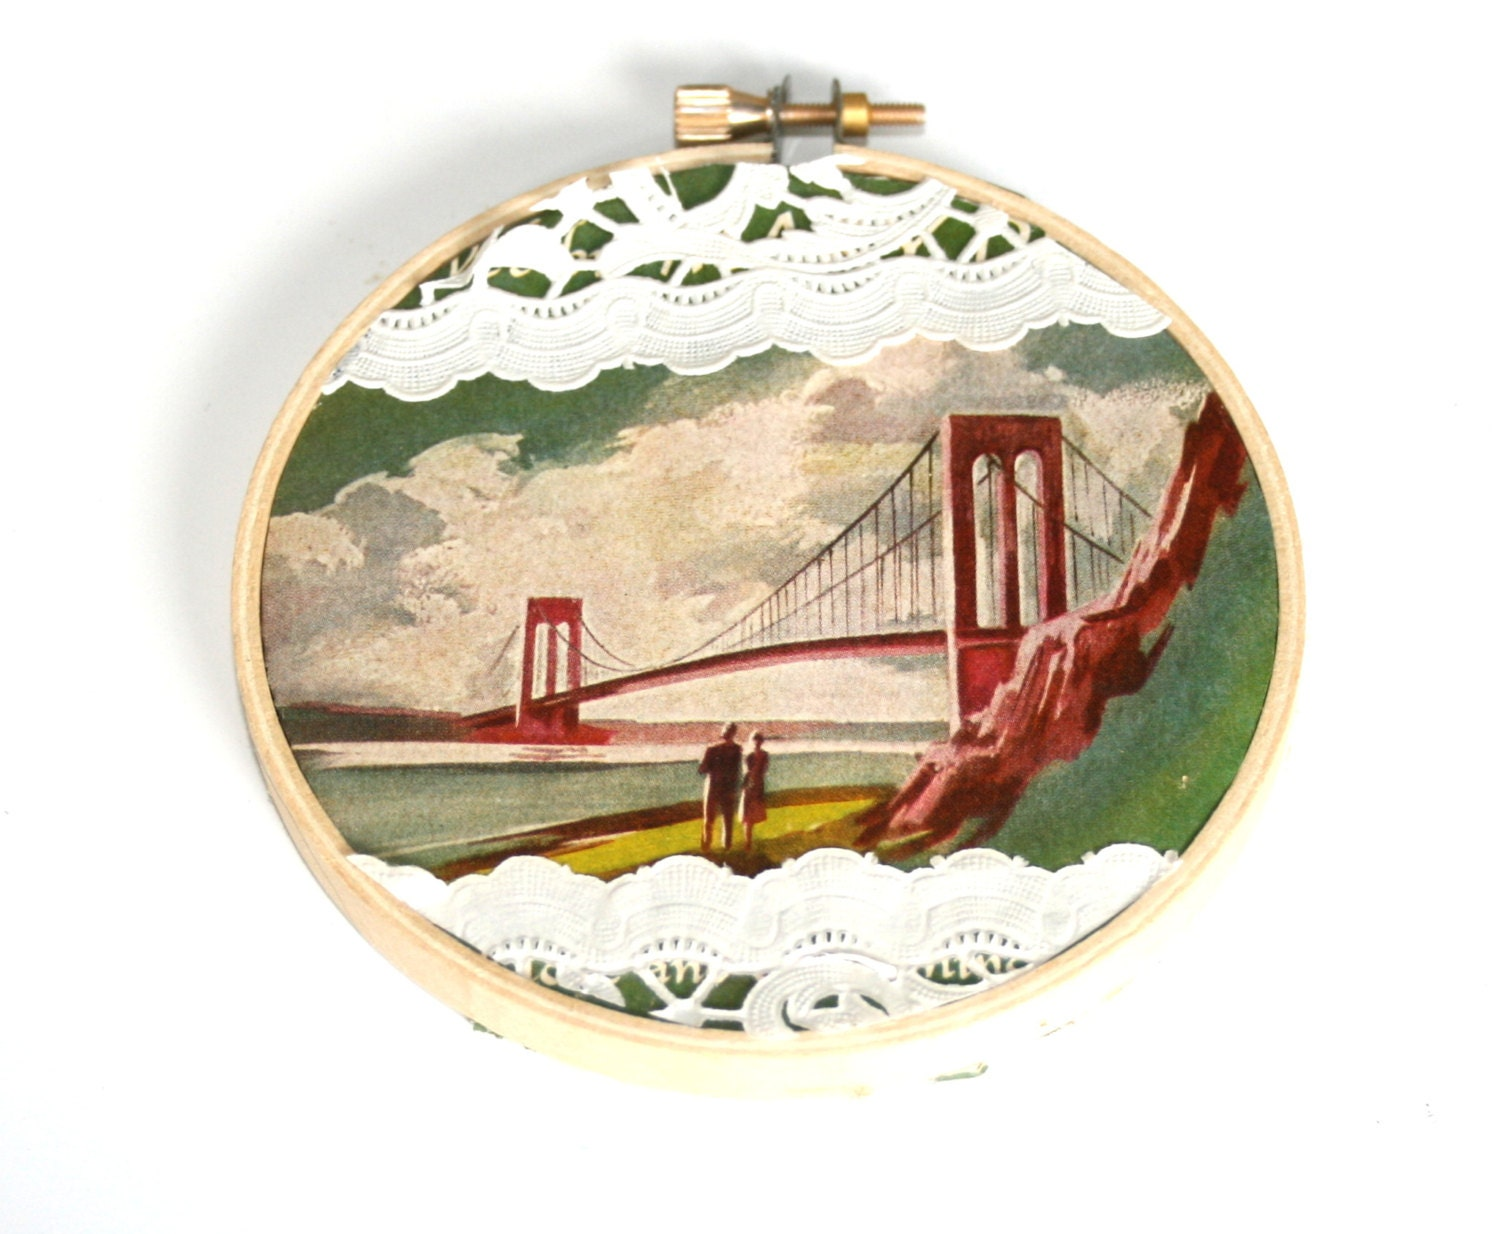 Vintage embroidery hoop art made with upcycled by